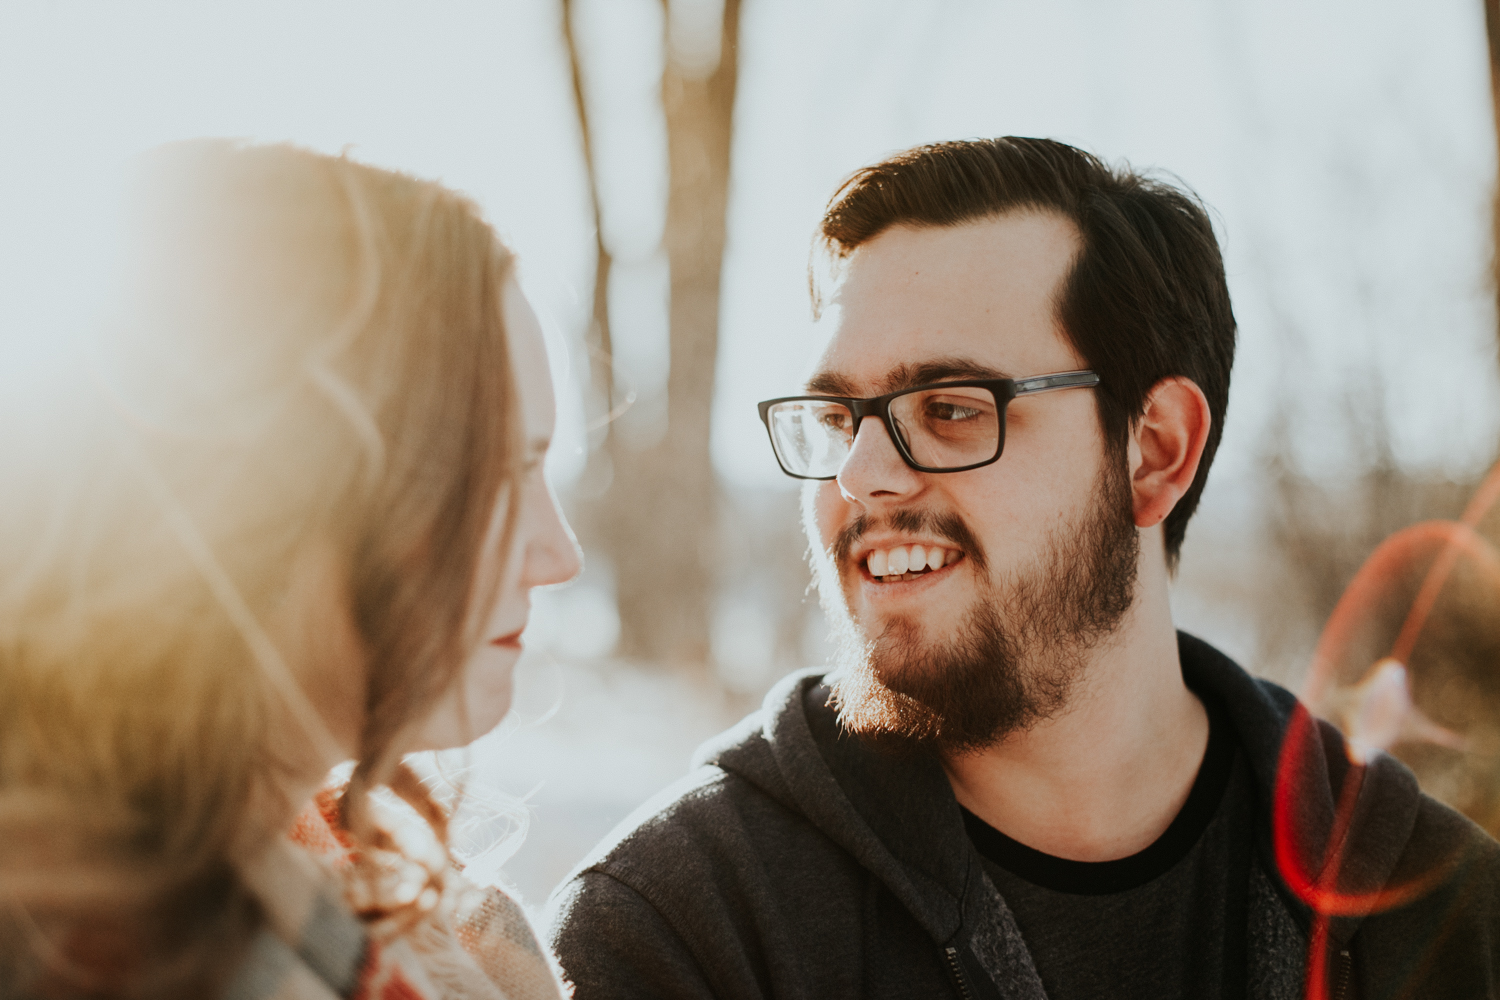 lethbridge-photography-love-and-be-loved-photographer-dan-tynnea-engagement-picture-image-photo-34.jpg